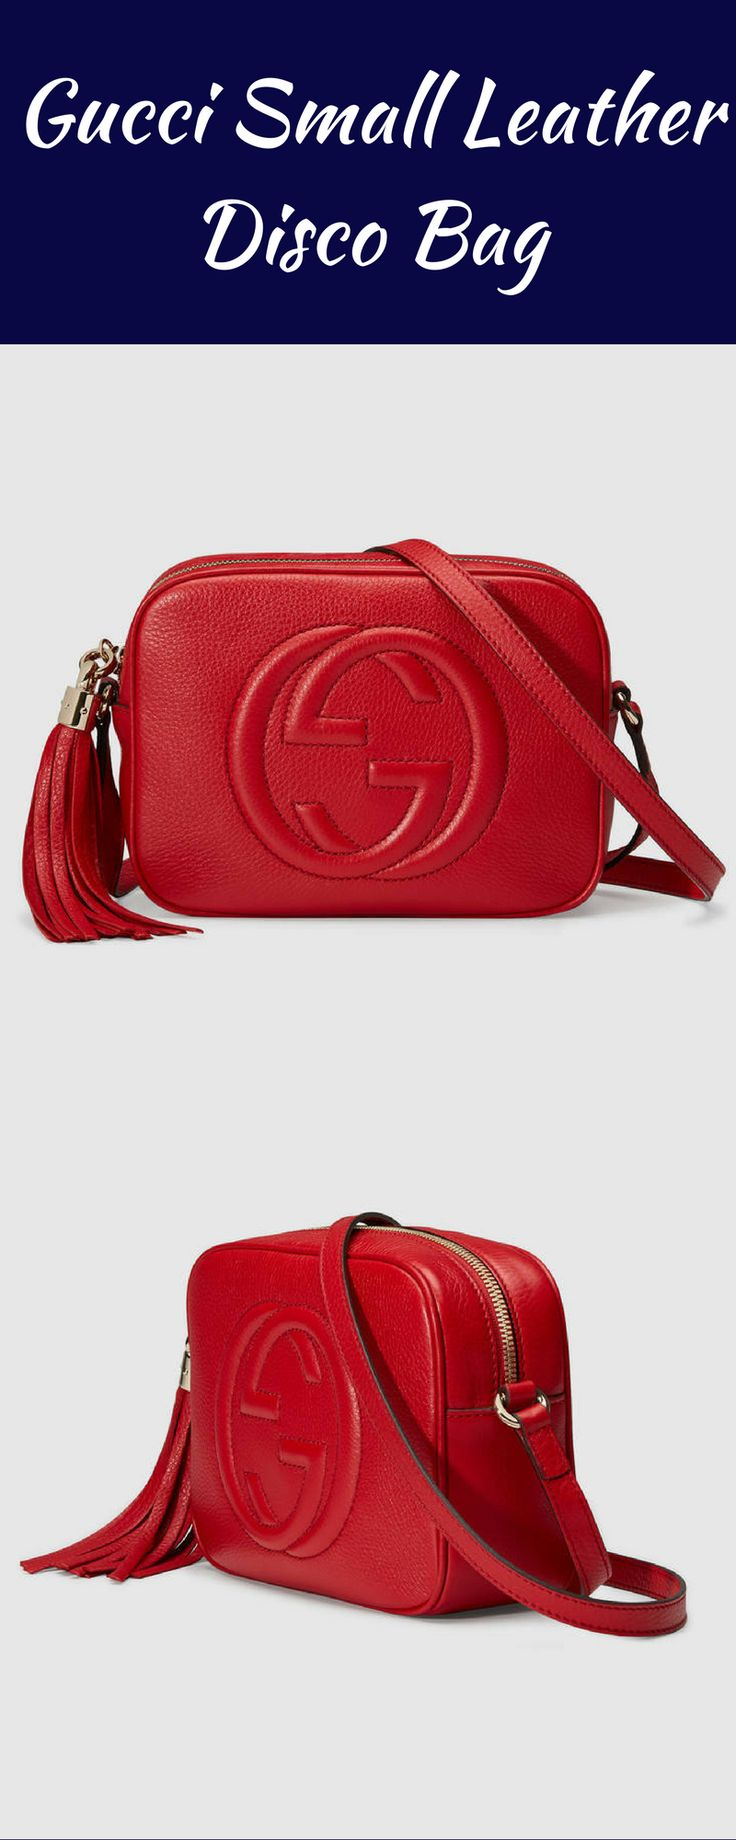 Gucci Small Leather Disco Bag. Best accessory for a night out! #affiliate